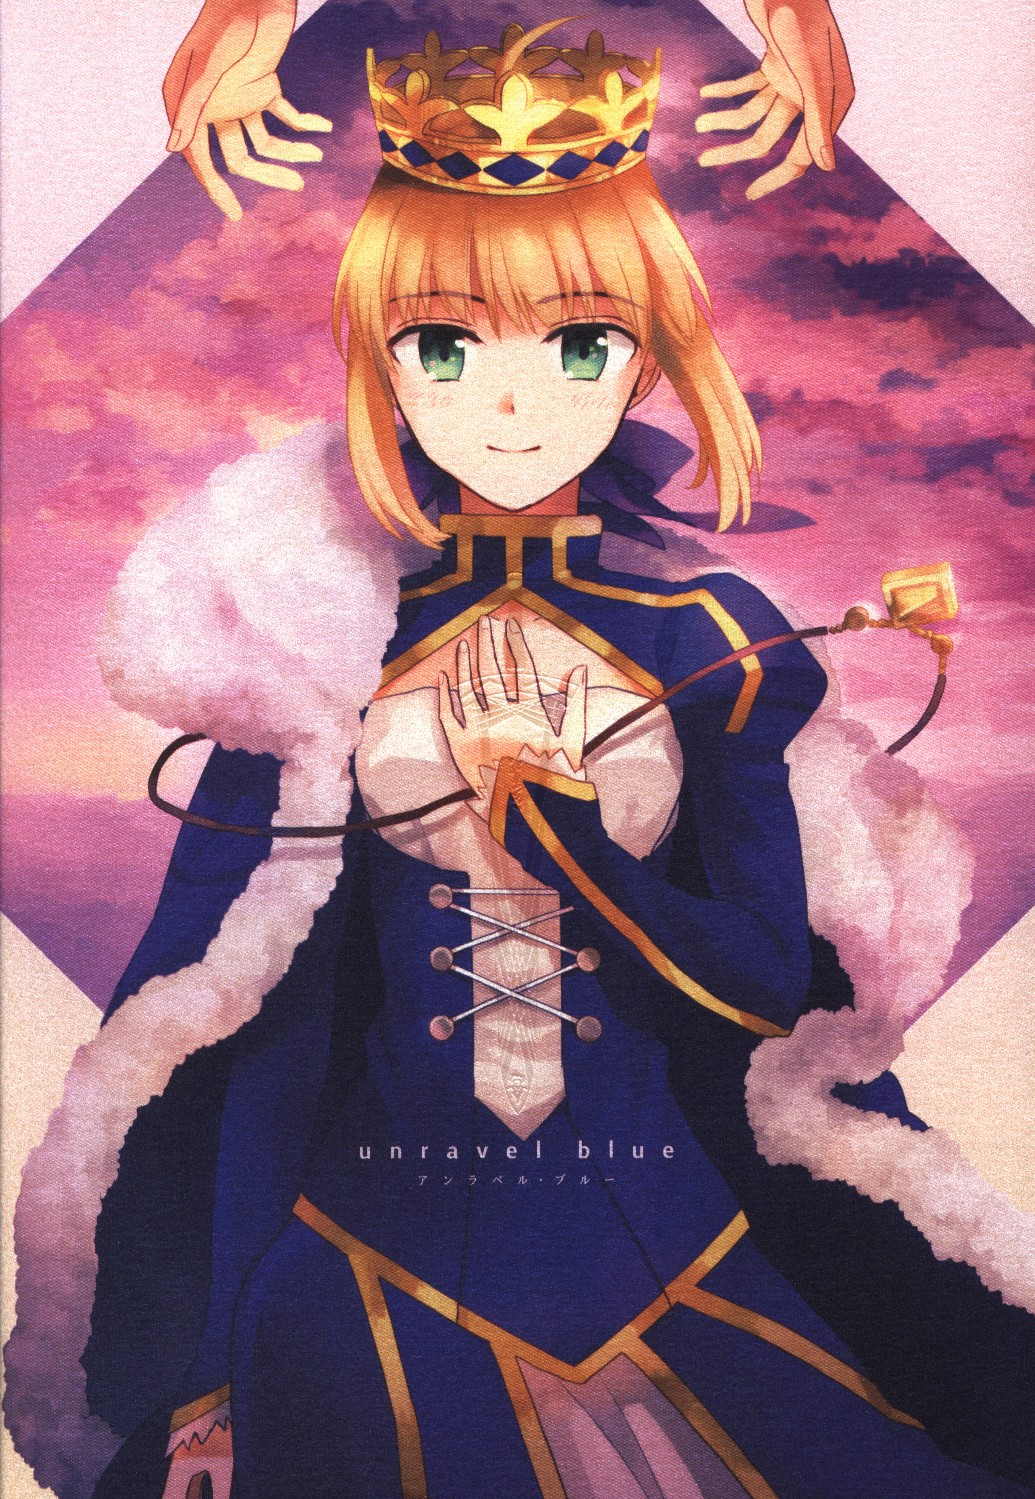 Doujinshi - Fate/stay night / Artoria Pendragon (Saber) (unravel blue) / Kosaji Sanbai